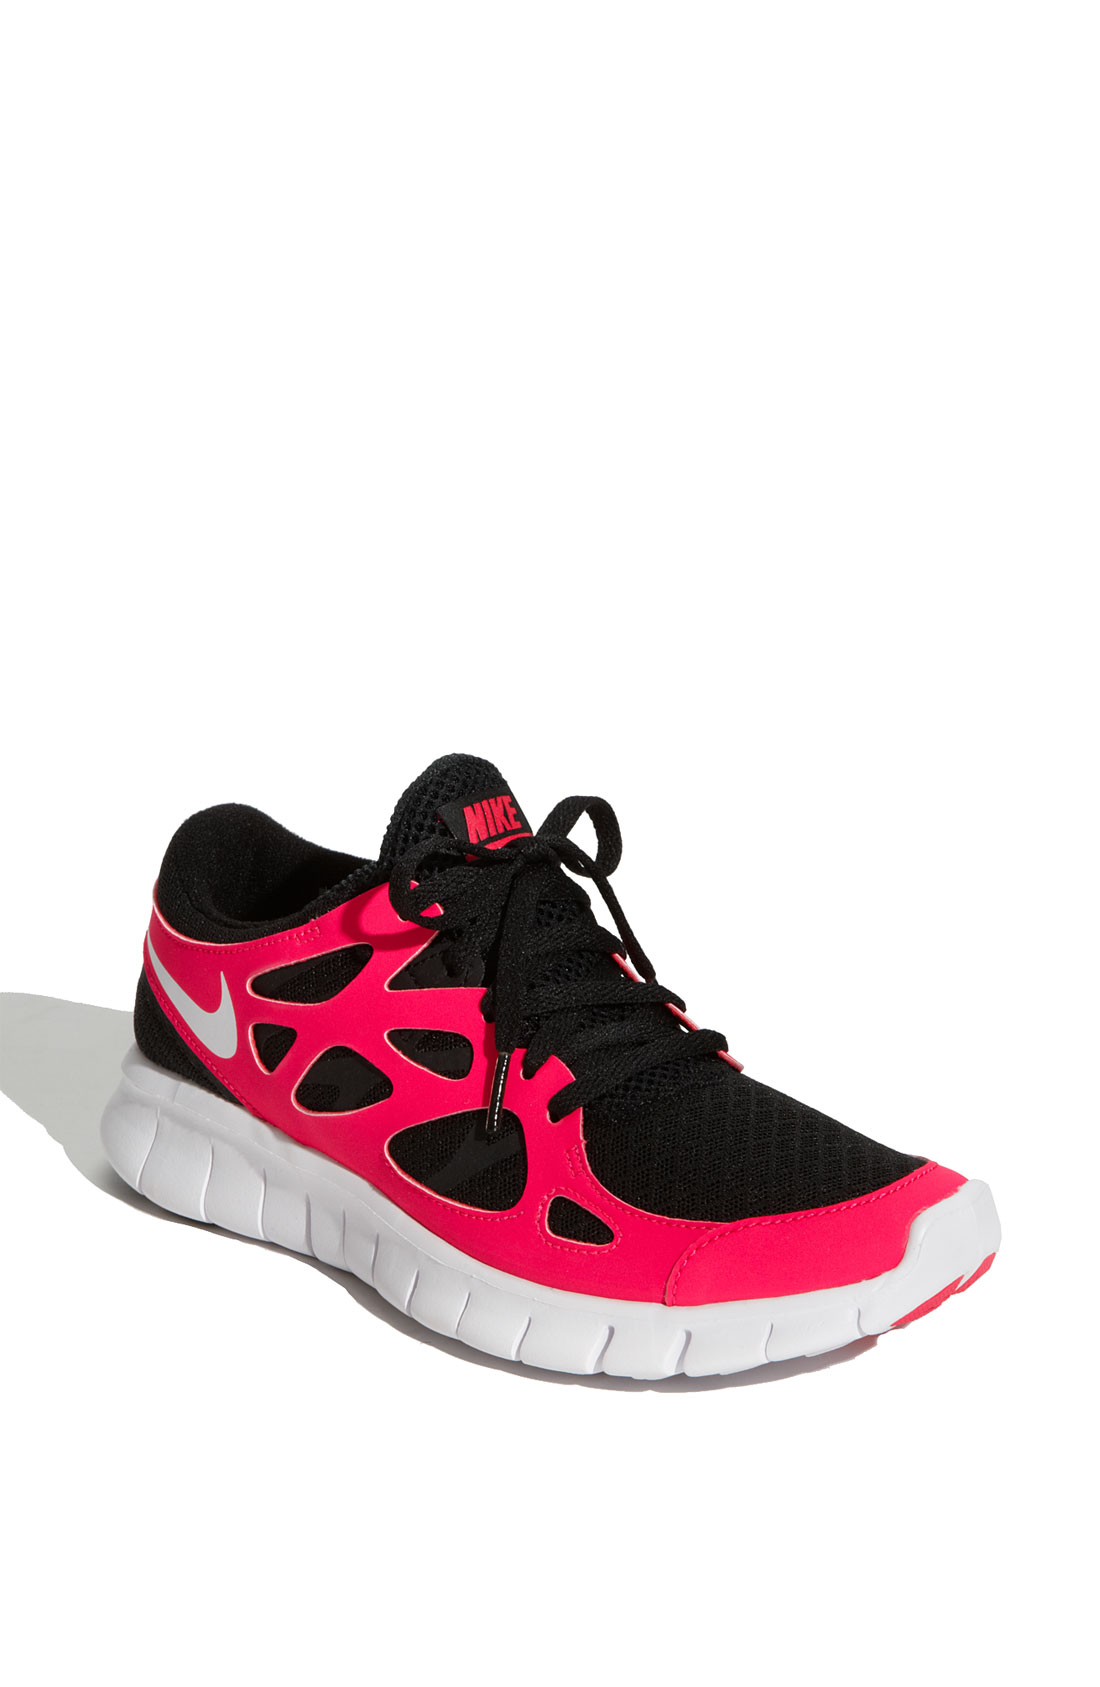 nike free run 2 running shoe in pink black pink yellow. Black Bedroom Furniture Sets. Home Design Ideas